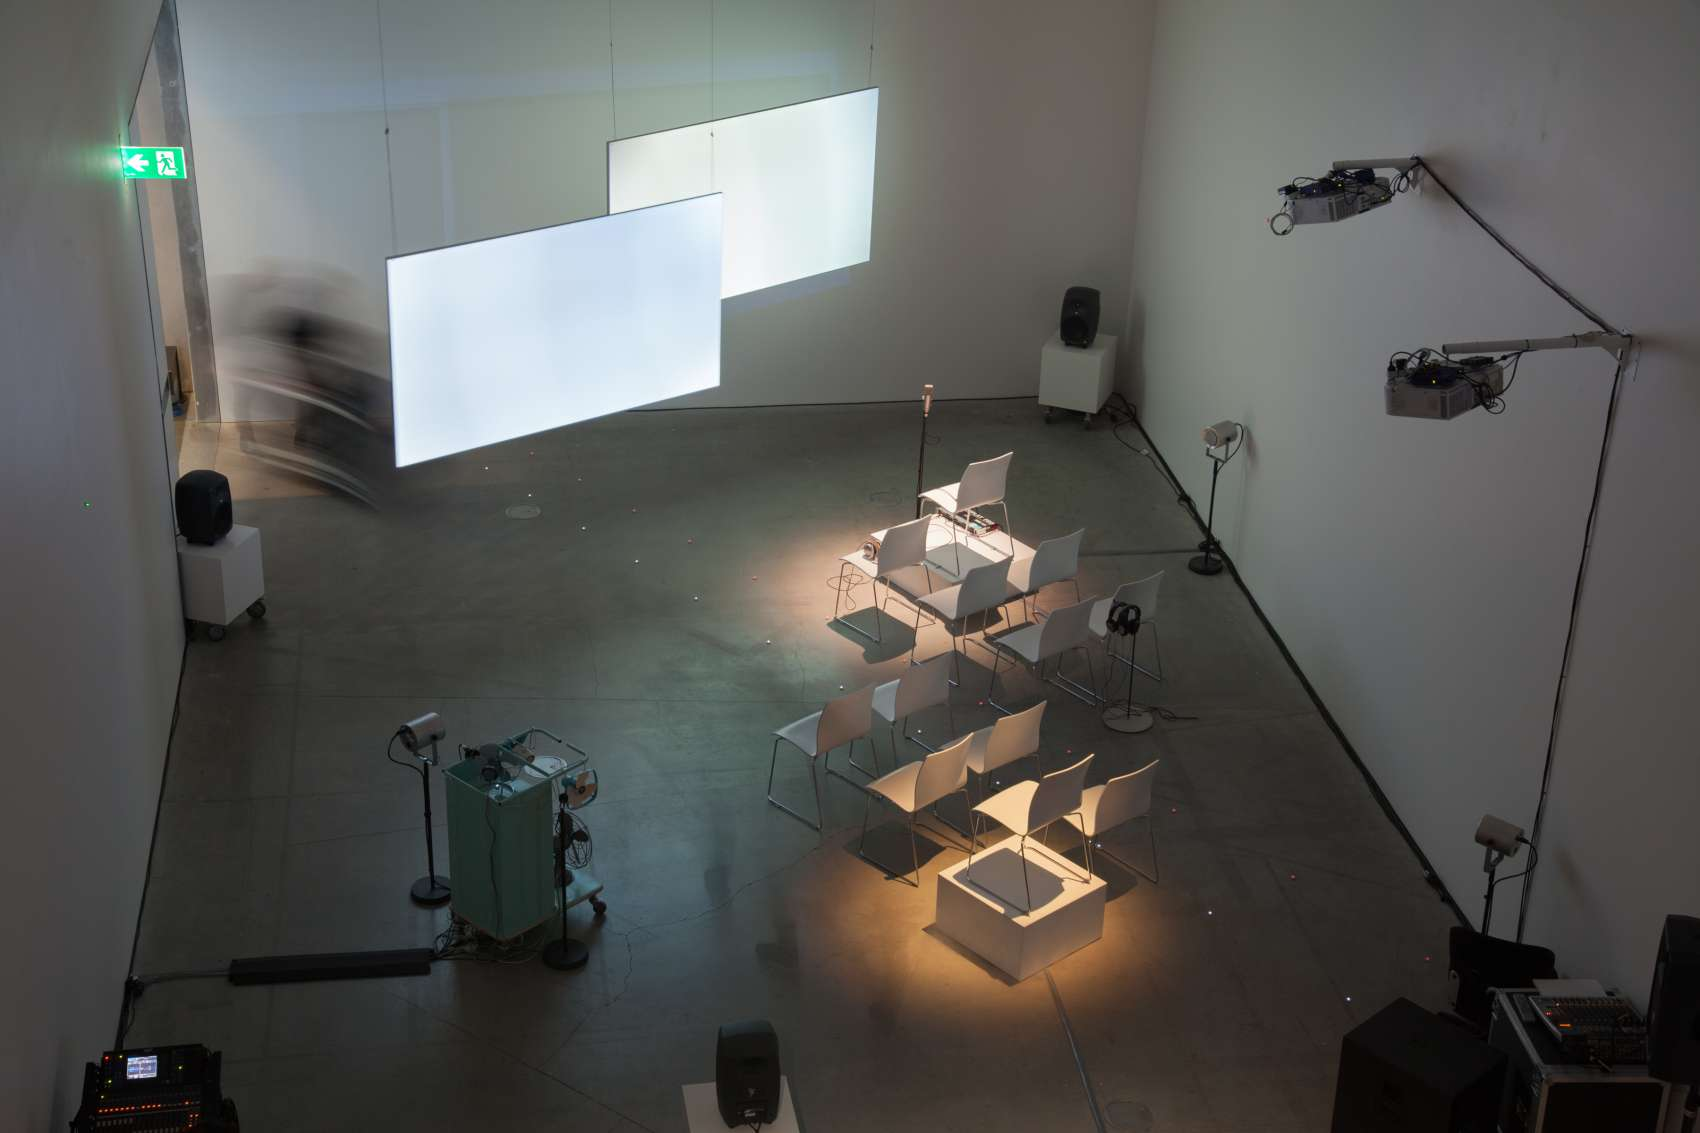 Birds eye view of empty performance space with chairs and screens